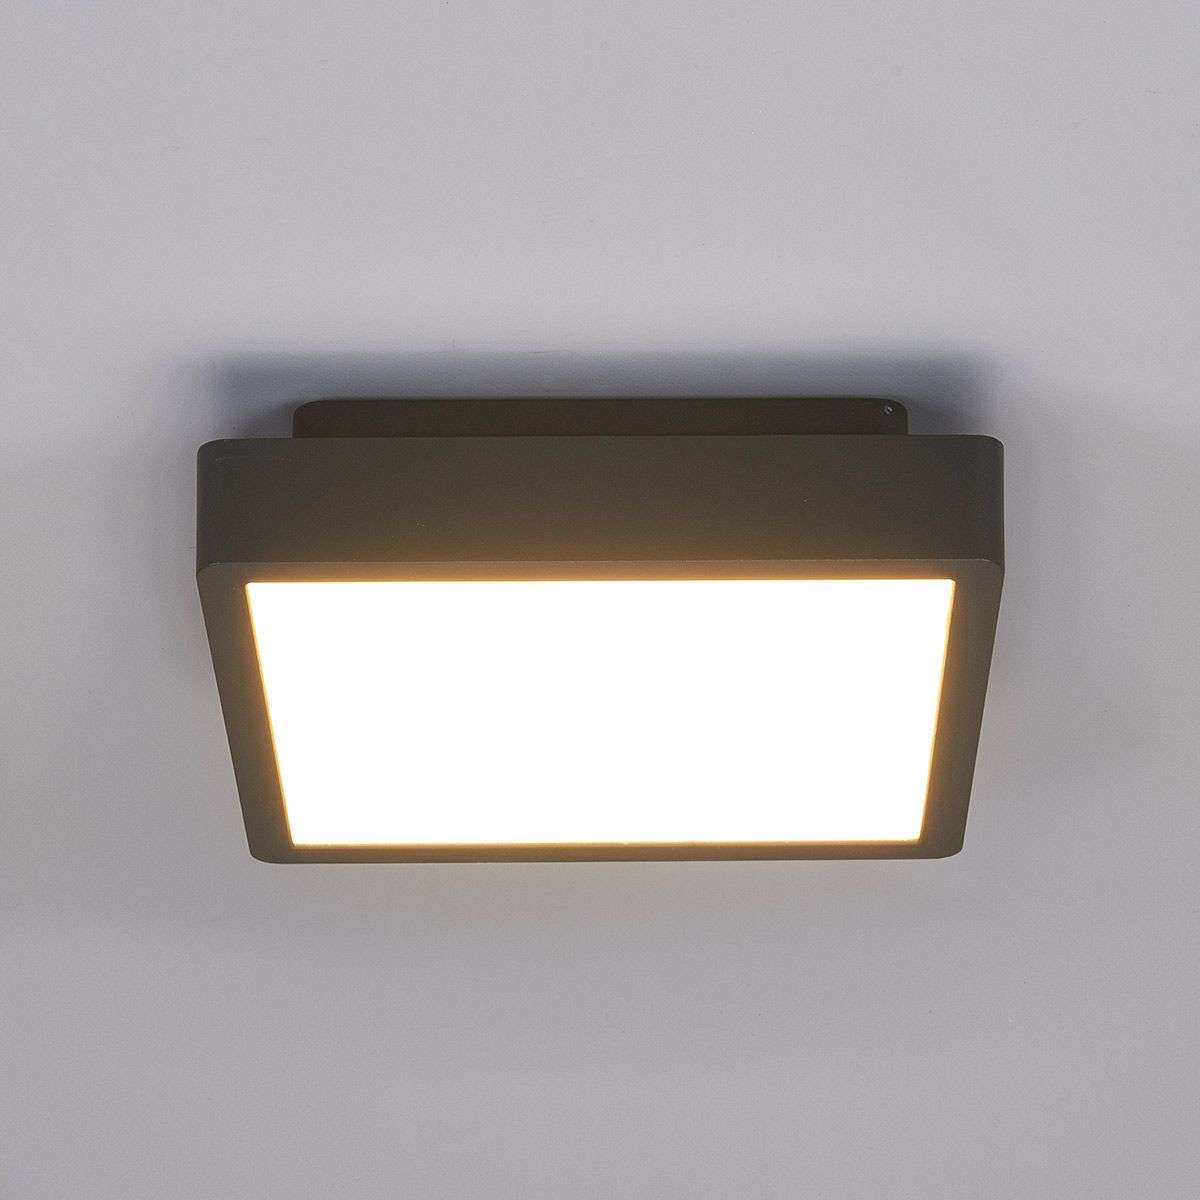 Rectangular Led Outdoor Ceiling Light Talea 9616049 31